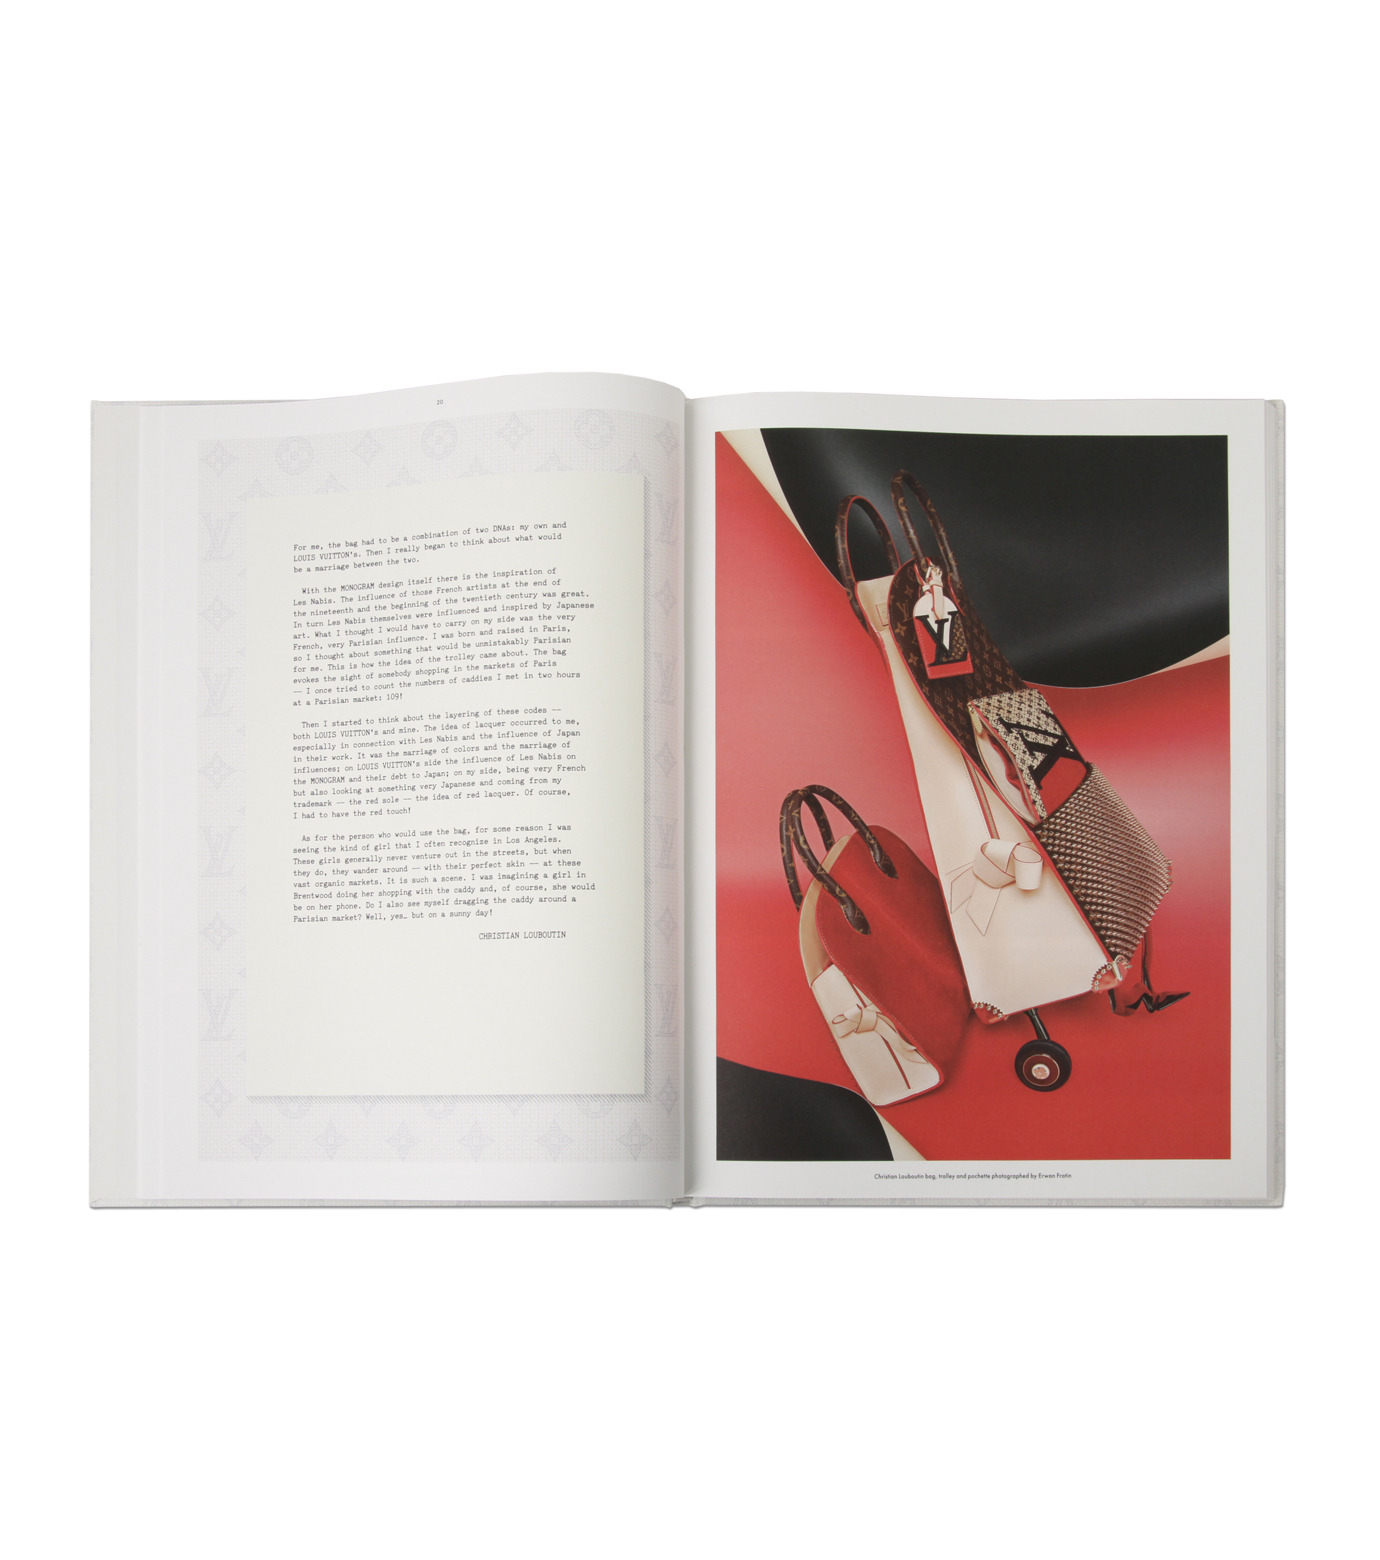 ArtBook(アートブック)のLouis Vuitton: The Icon and the Iconoclasts - A Celebration of Monogram.-WHITE(インテリア/OTHER-GOODS/interior/OTHER-GOODS)-8478-4560-6-4 拡大詳細画像2